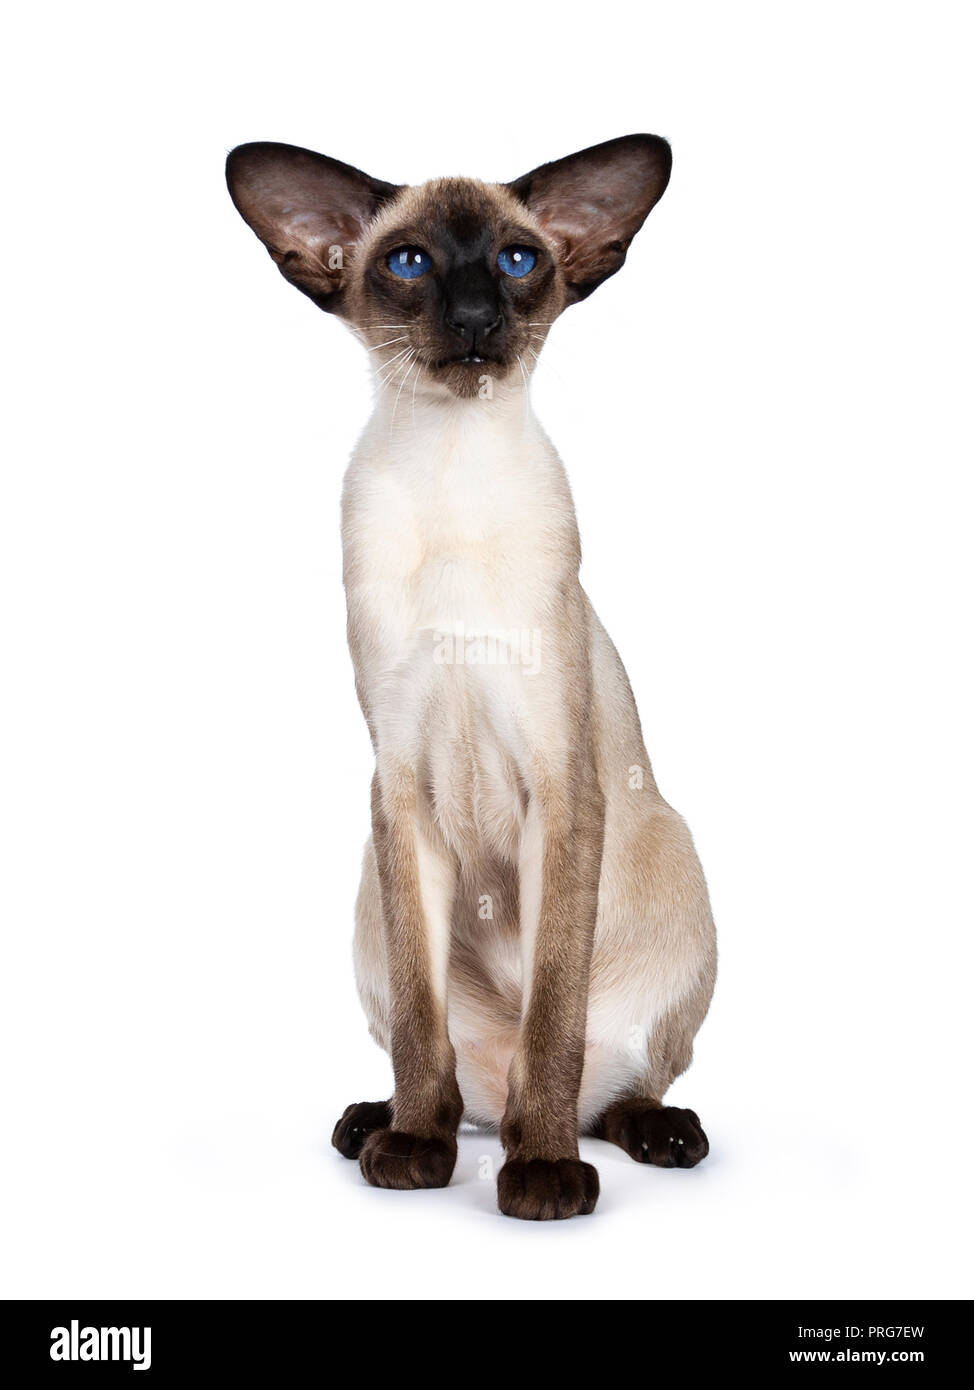 Excellent seal point Siamese cat kitten sitting front view looking at camera with deep blue eyes, isolated on white background - Stock Image